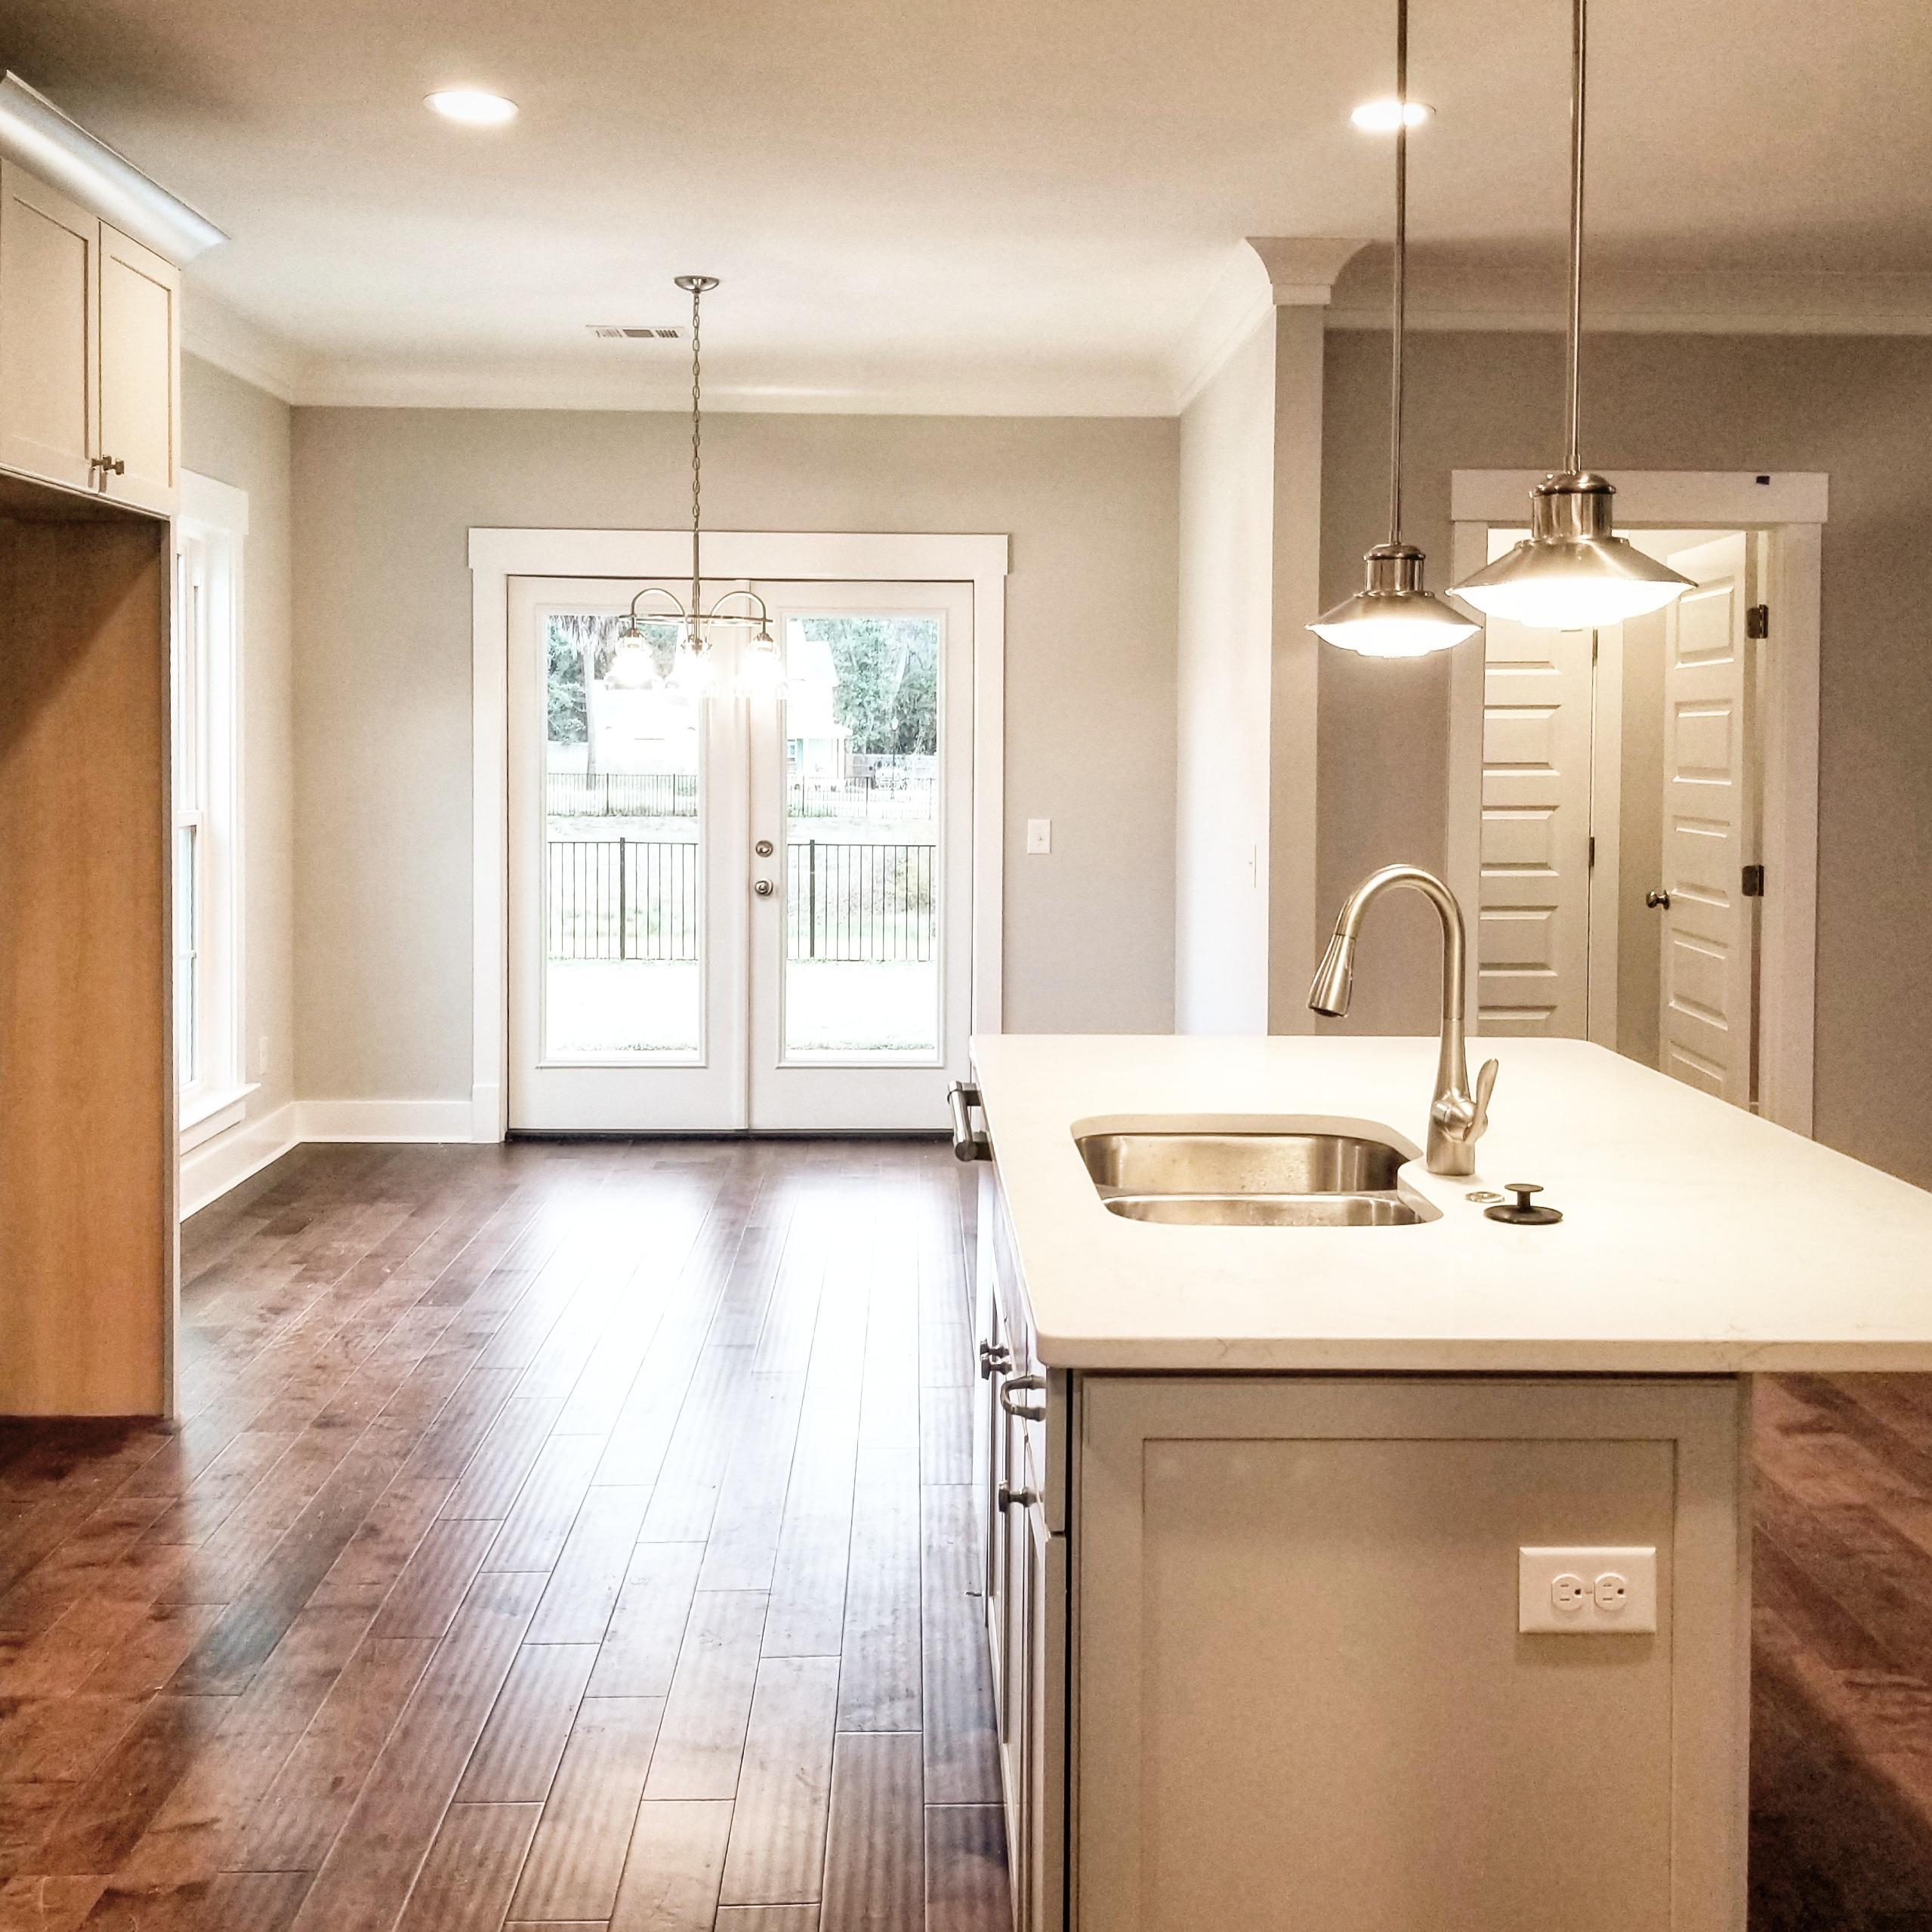 Kitchen featured in the Cumberland By Konter Quality Homes in Savannah, GA